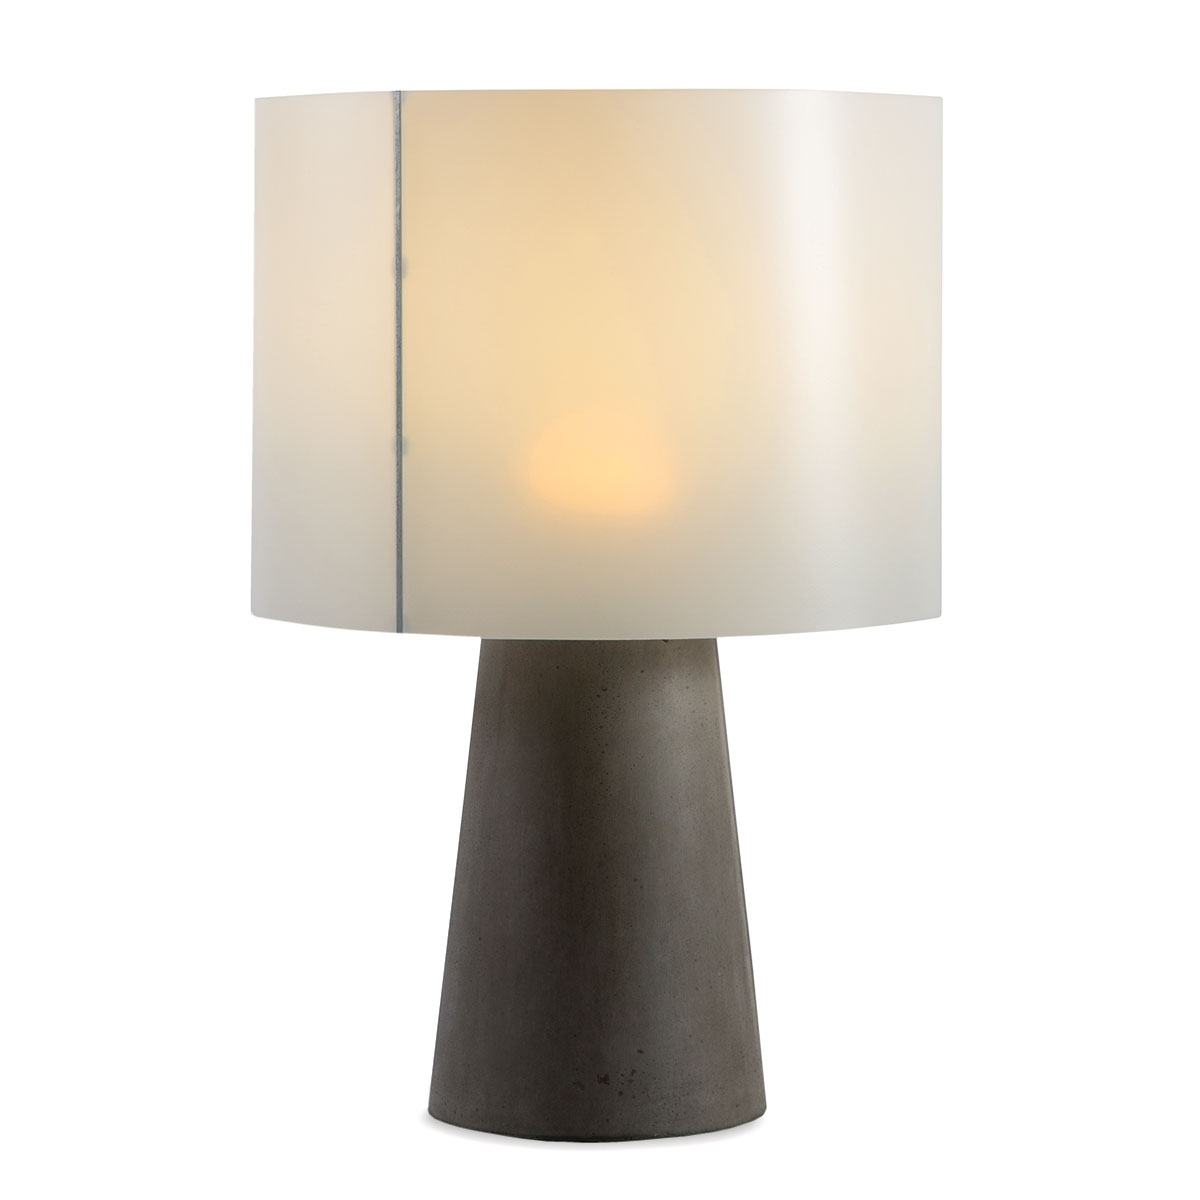 Well Known Living Room Table Lamps At Target Regarding Lamp : Outdoor Cordless Concrete Table Lamp Dark Gray Items Creation (View 19 of 20)